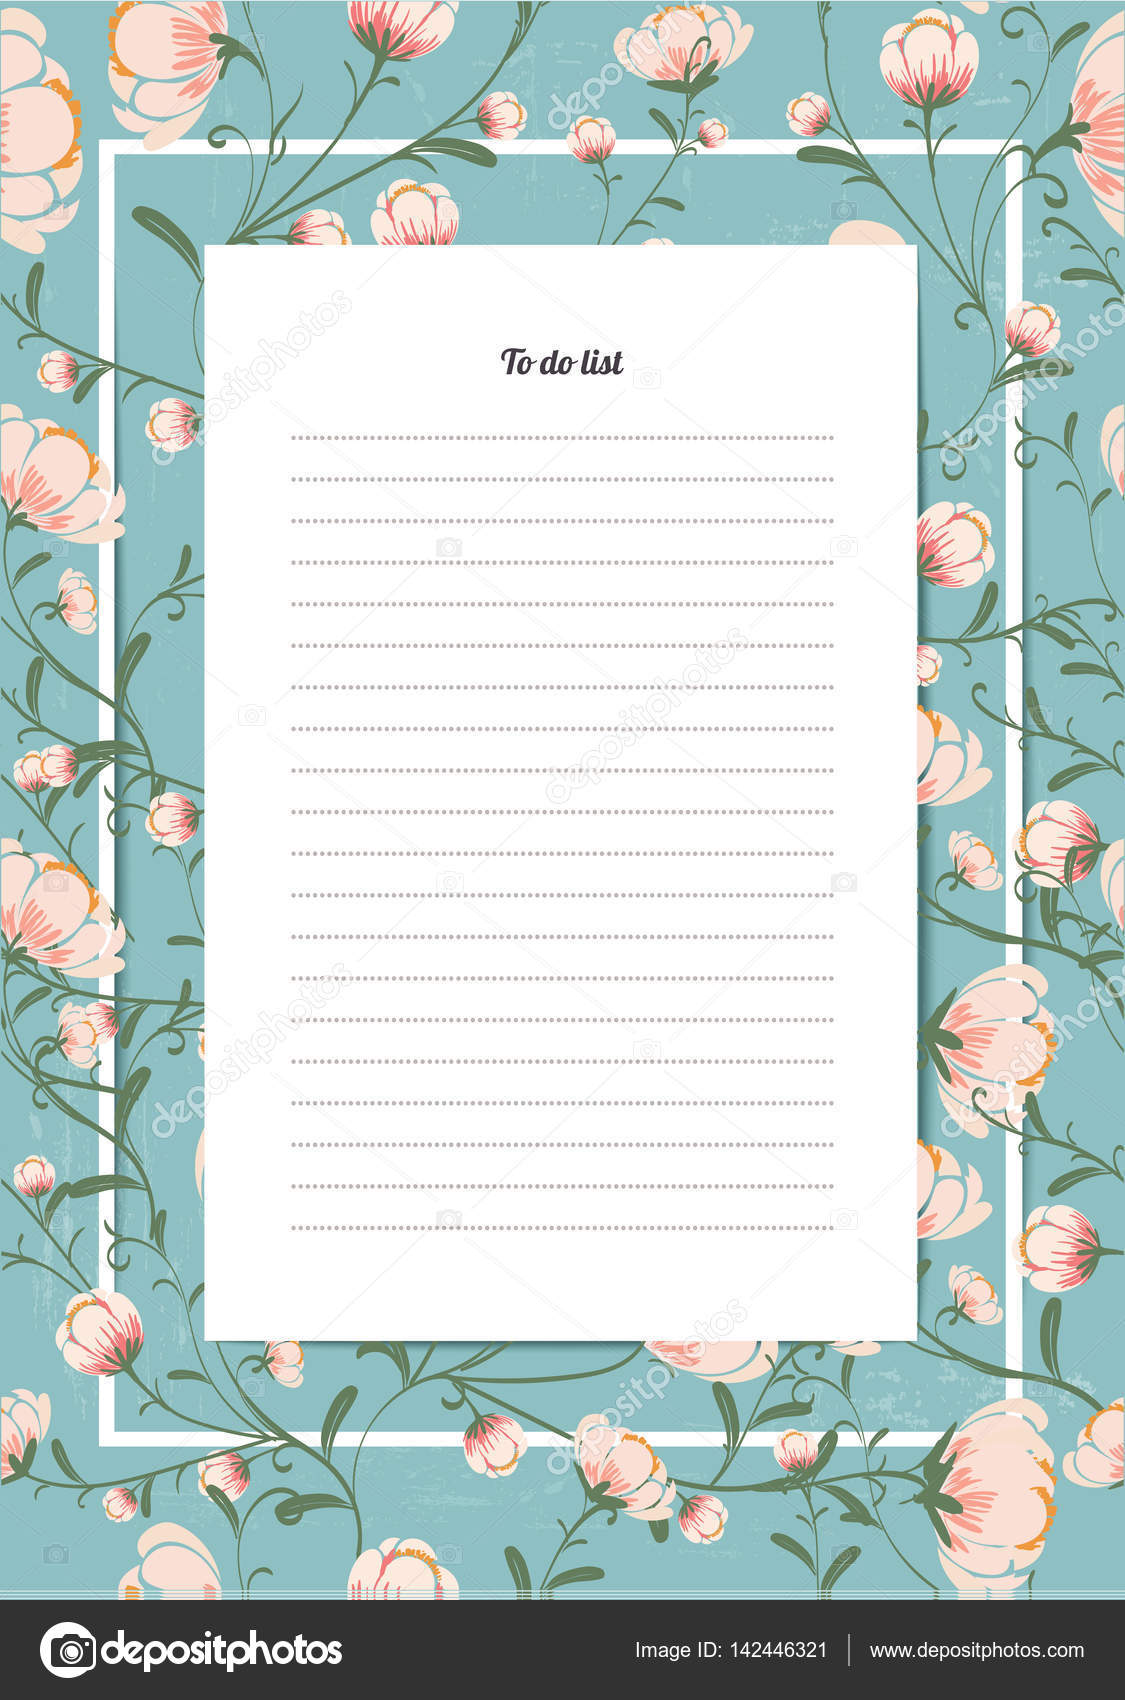 flowers poster template to do list with a bouquet of blossoms